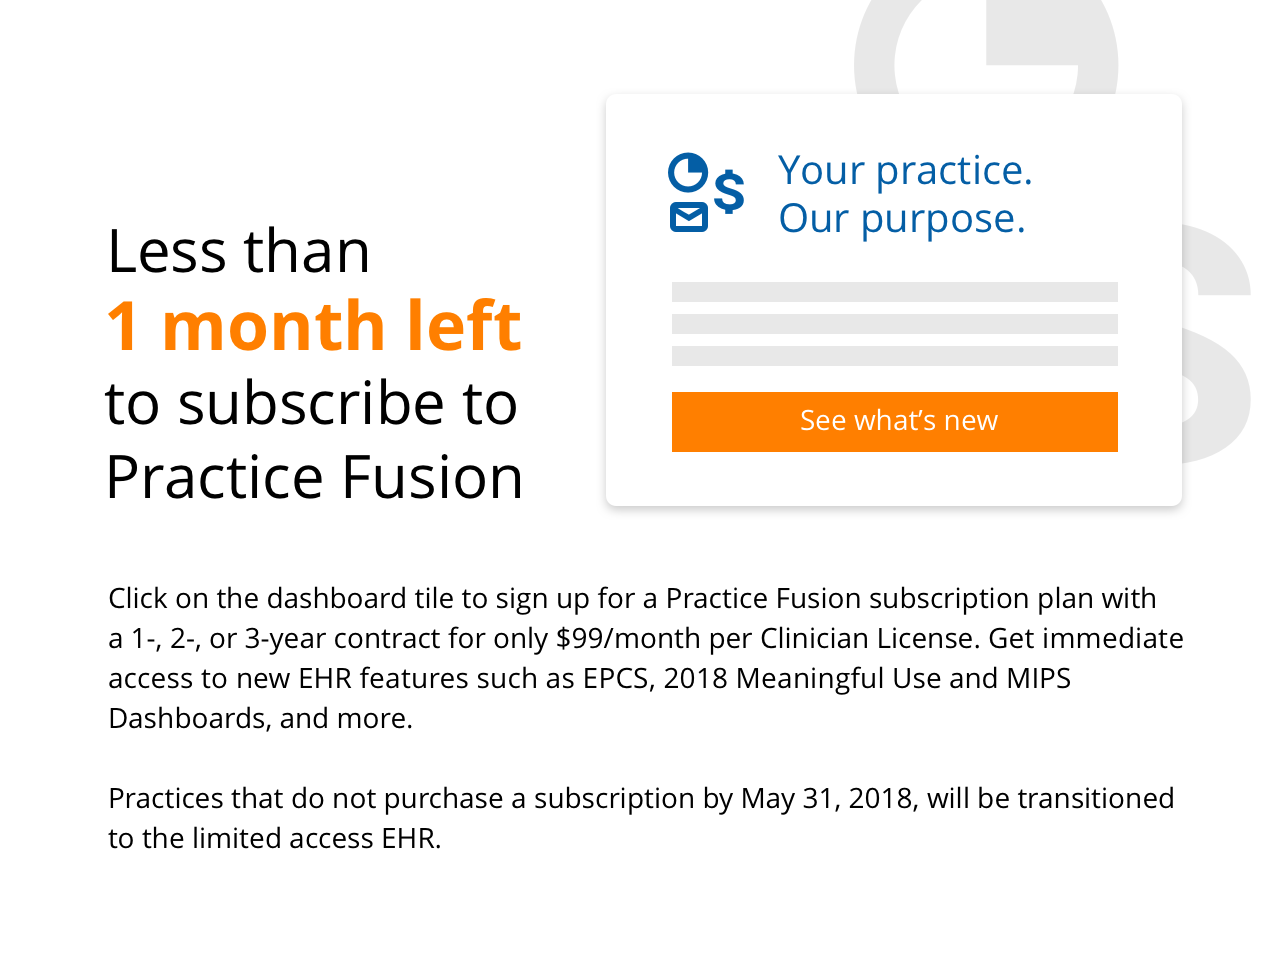 Click on the dasboard tile to sign up for a Practice Fusion subscription plan with a 1-, 2-, or 3-year contract for onl $99/month per Clinician Liscense. Get immediate access to new EHR features such as EPCS, 2018 Meaningful Use and MIPS Dashboards, and more.  Practices that do not purchase a subscription by May 31, 2018, will be transitioned to the limited access EHR.